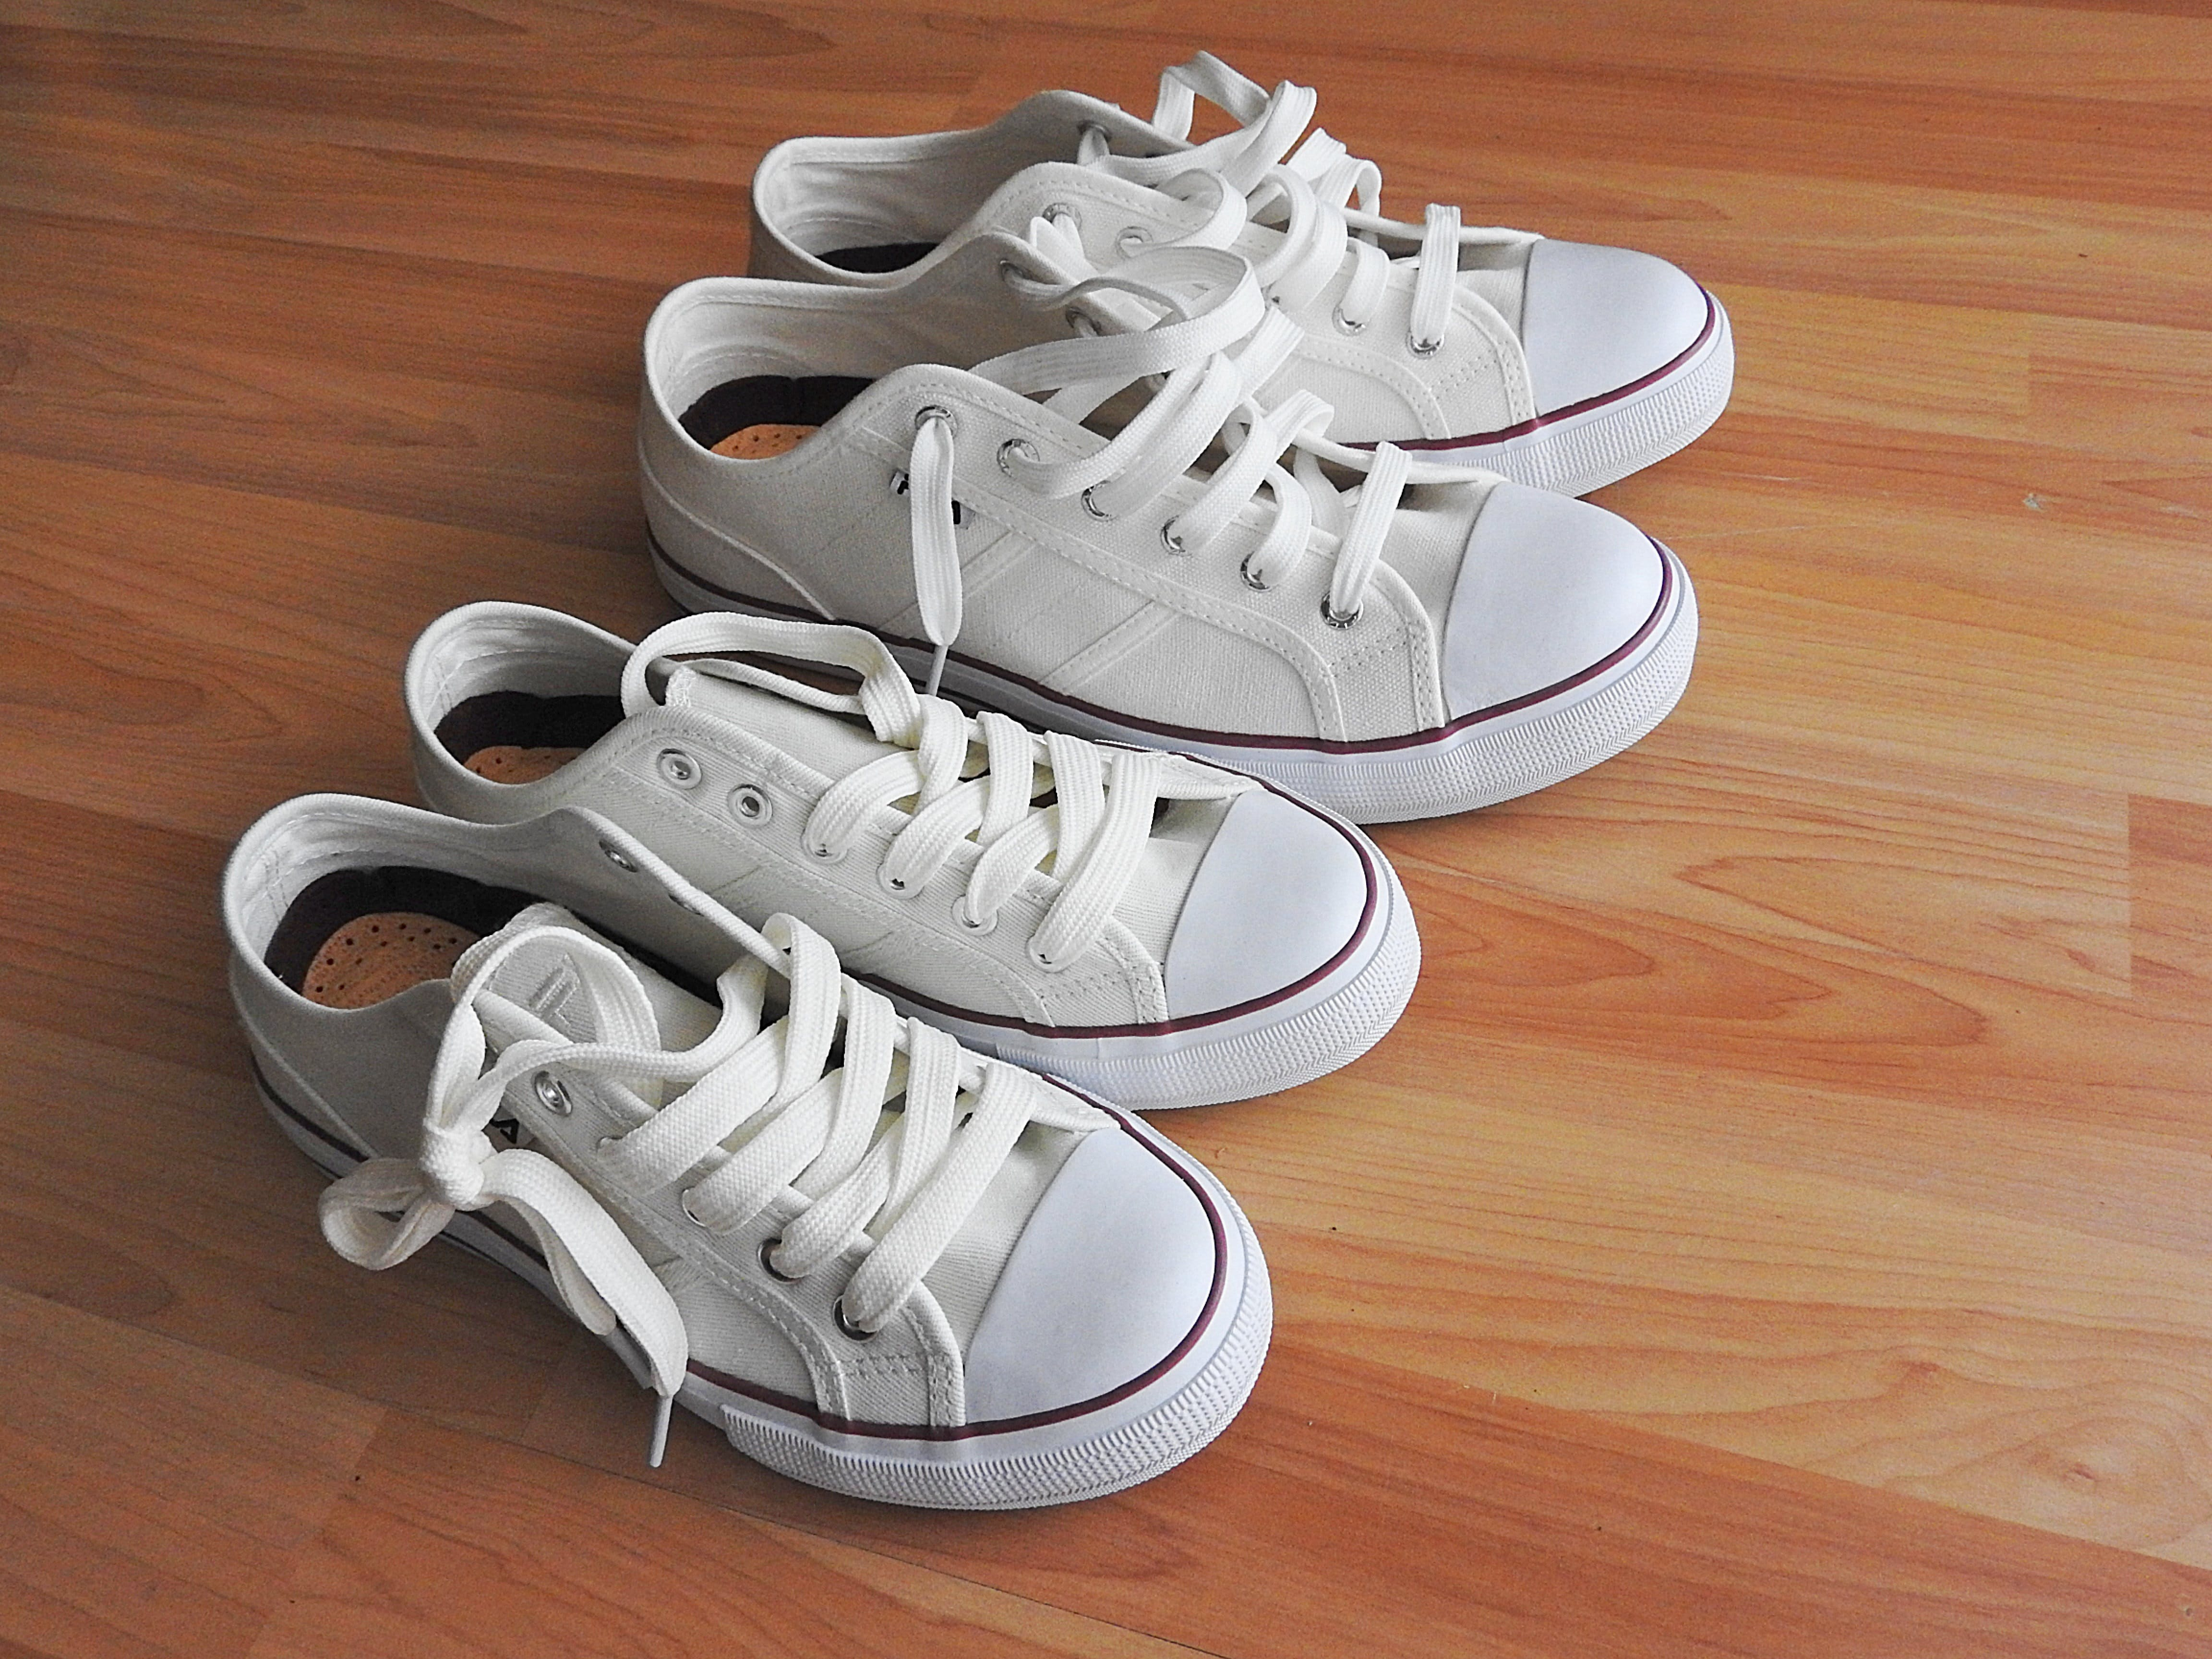 Two Pairs of White Sneakers on Brown Wooden Flooring